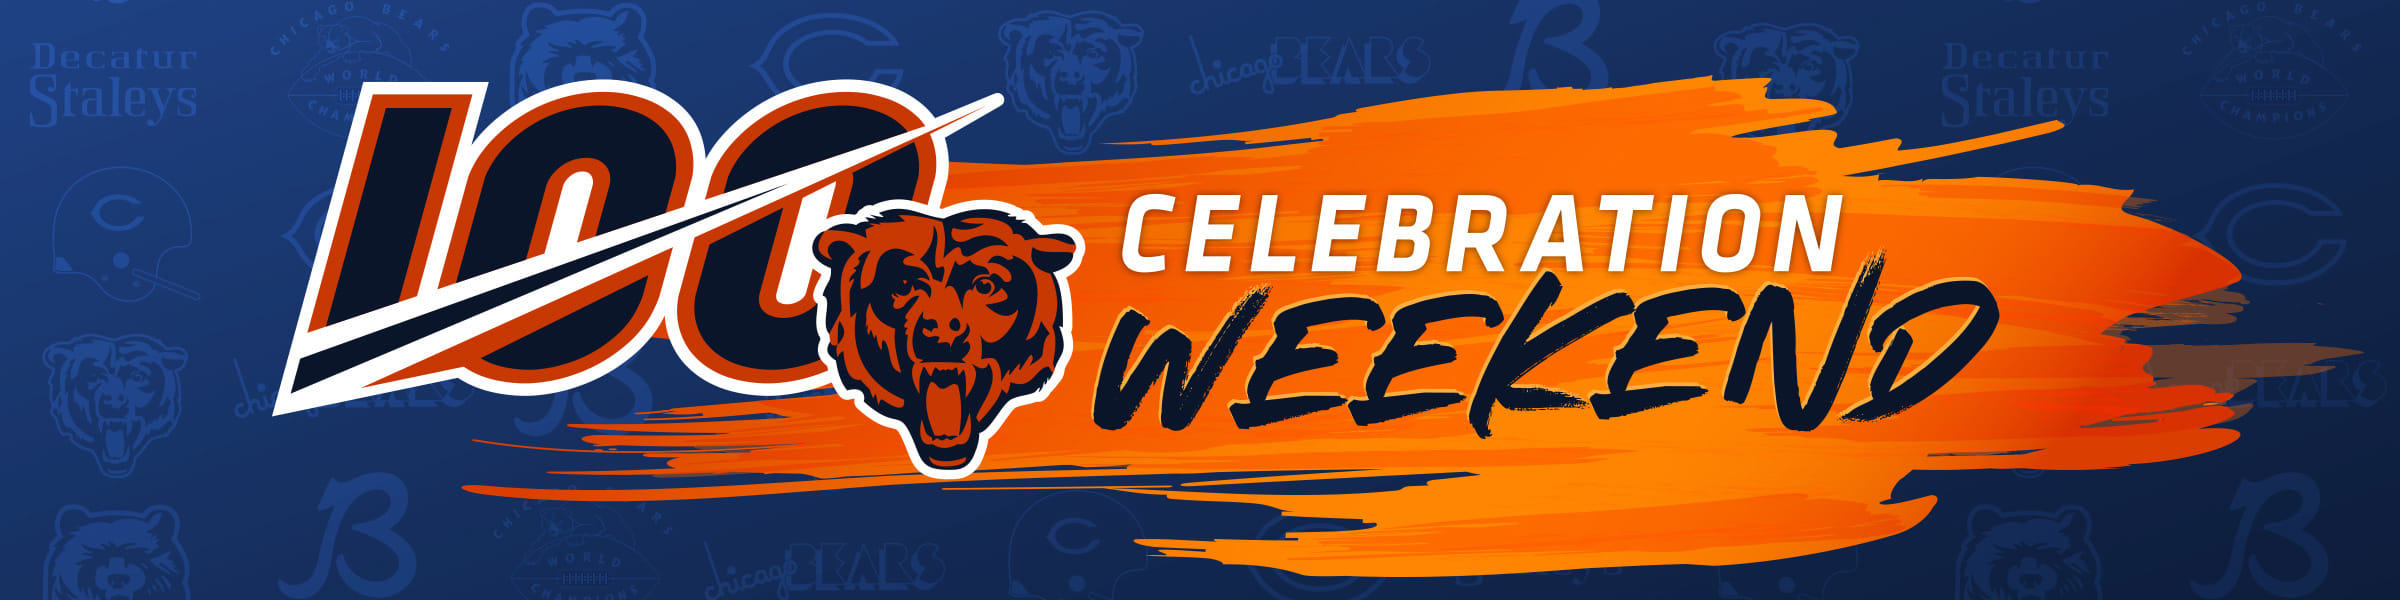 info for 3cacc 6119a Bears100 Celebration Weekend | Chicago Bears Official Website